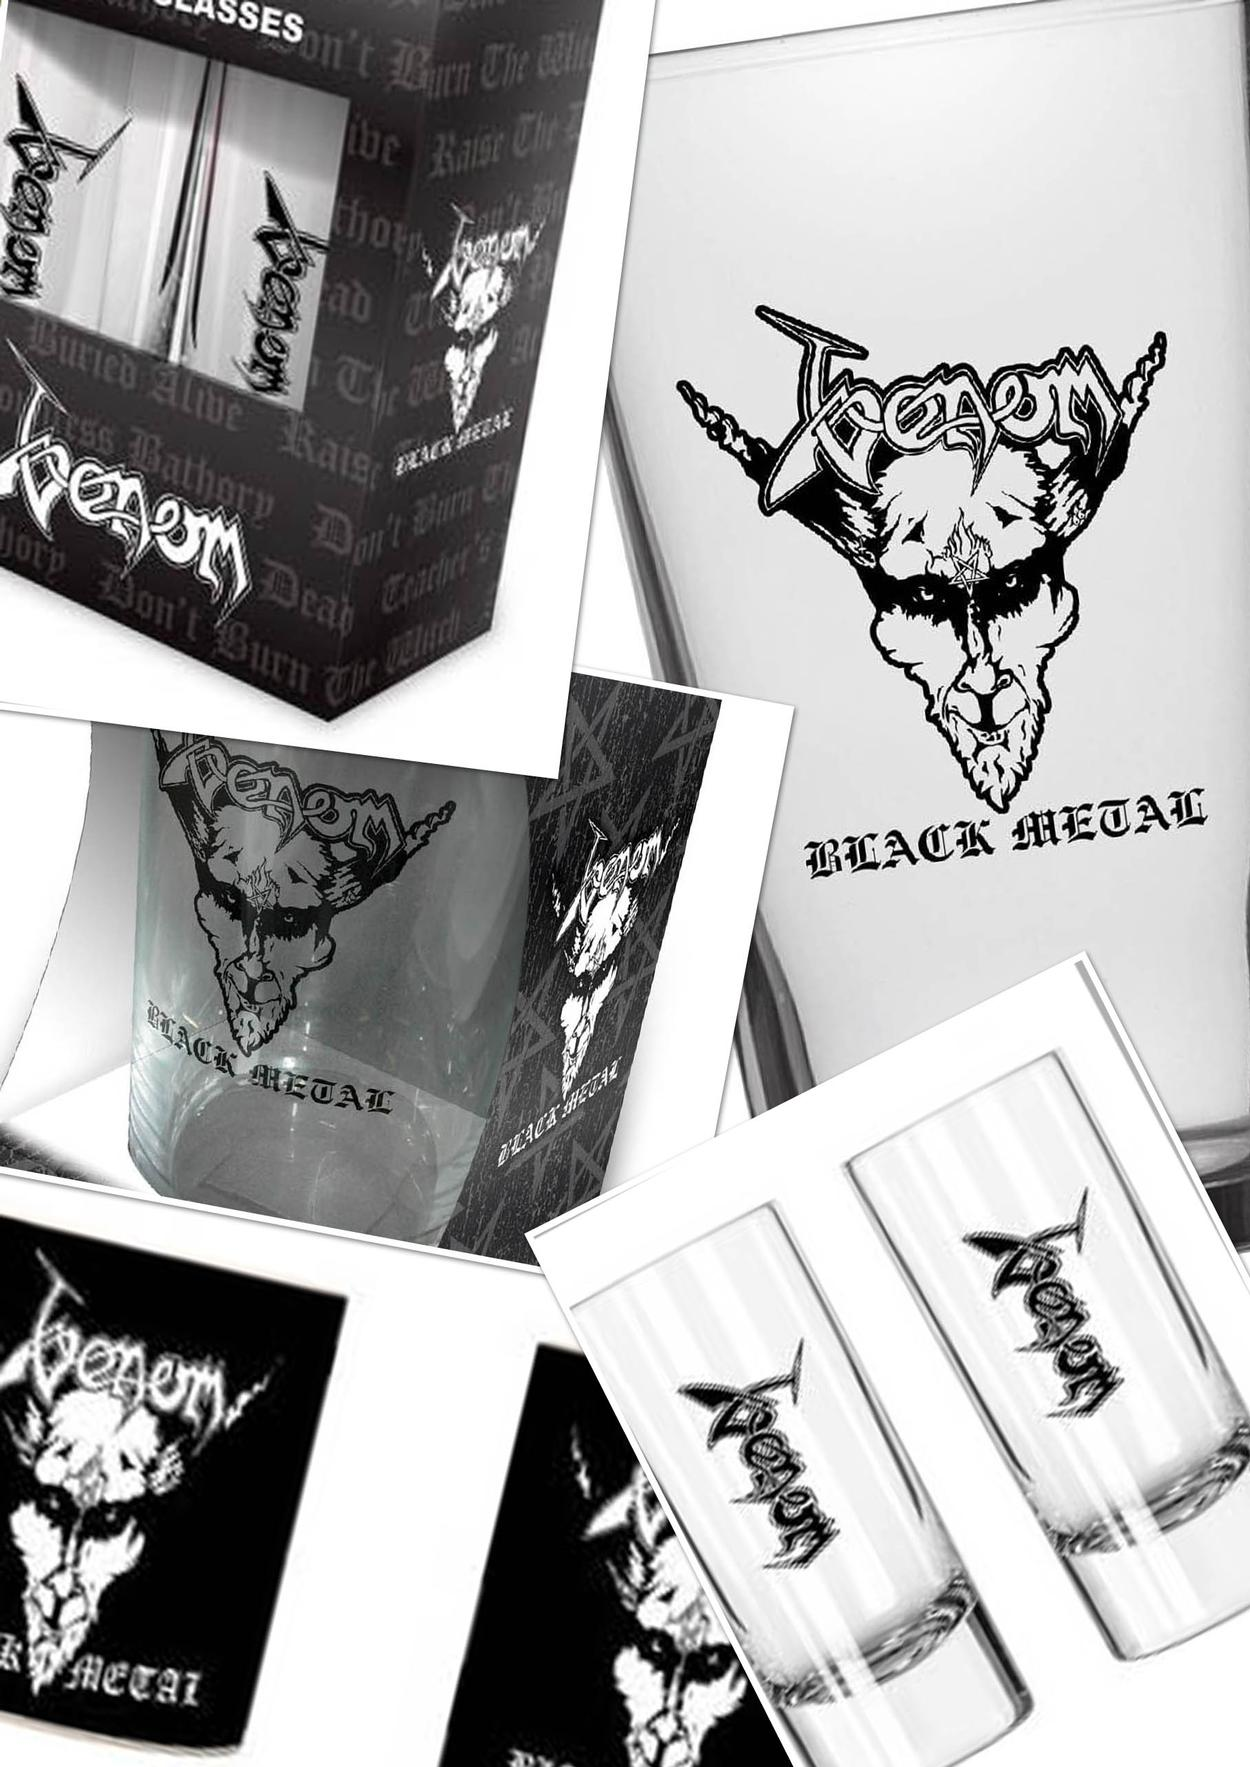 venom black metal collection homepage glasses mugs